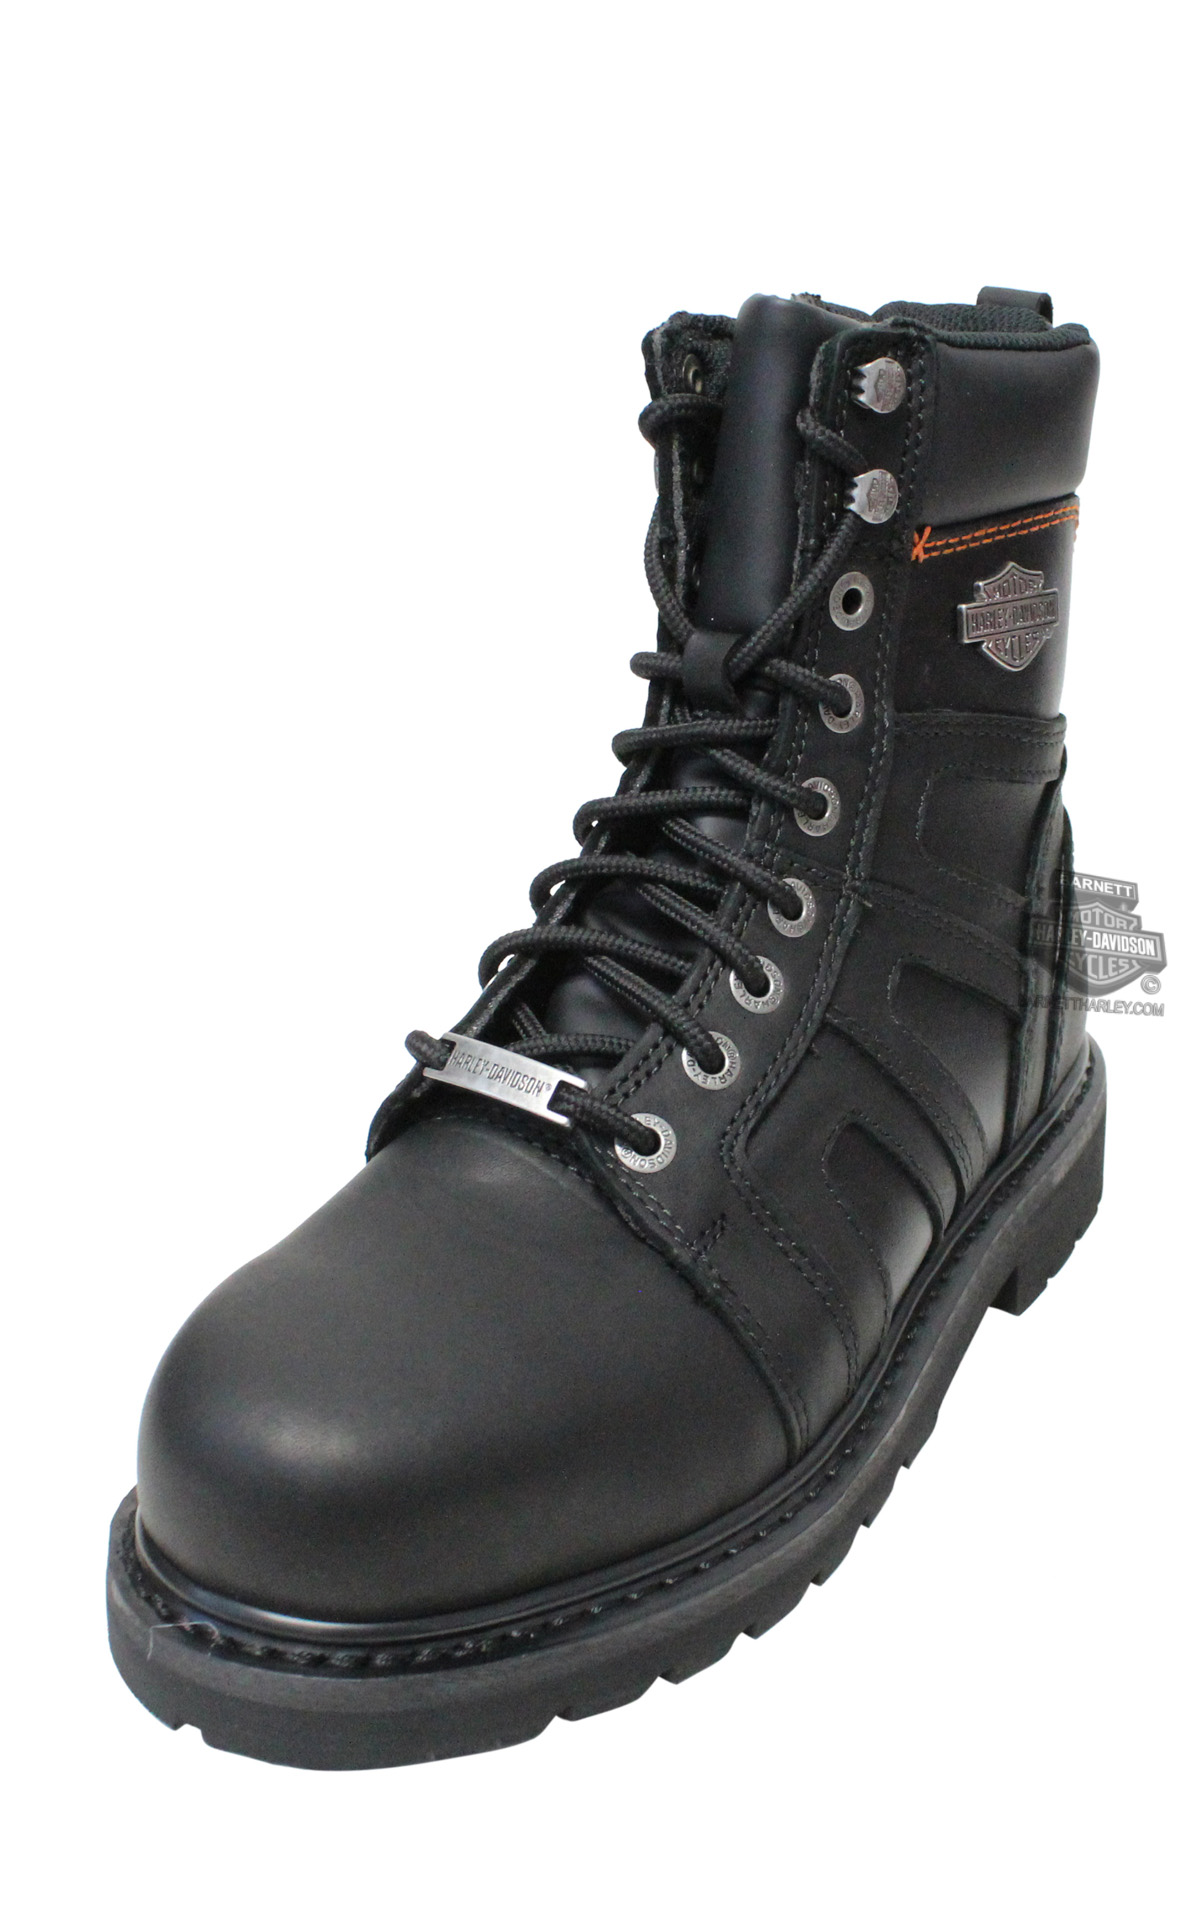 93177 harley davidson 174 mens craig steel toe black